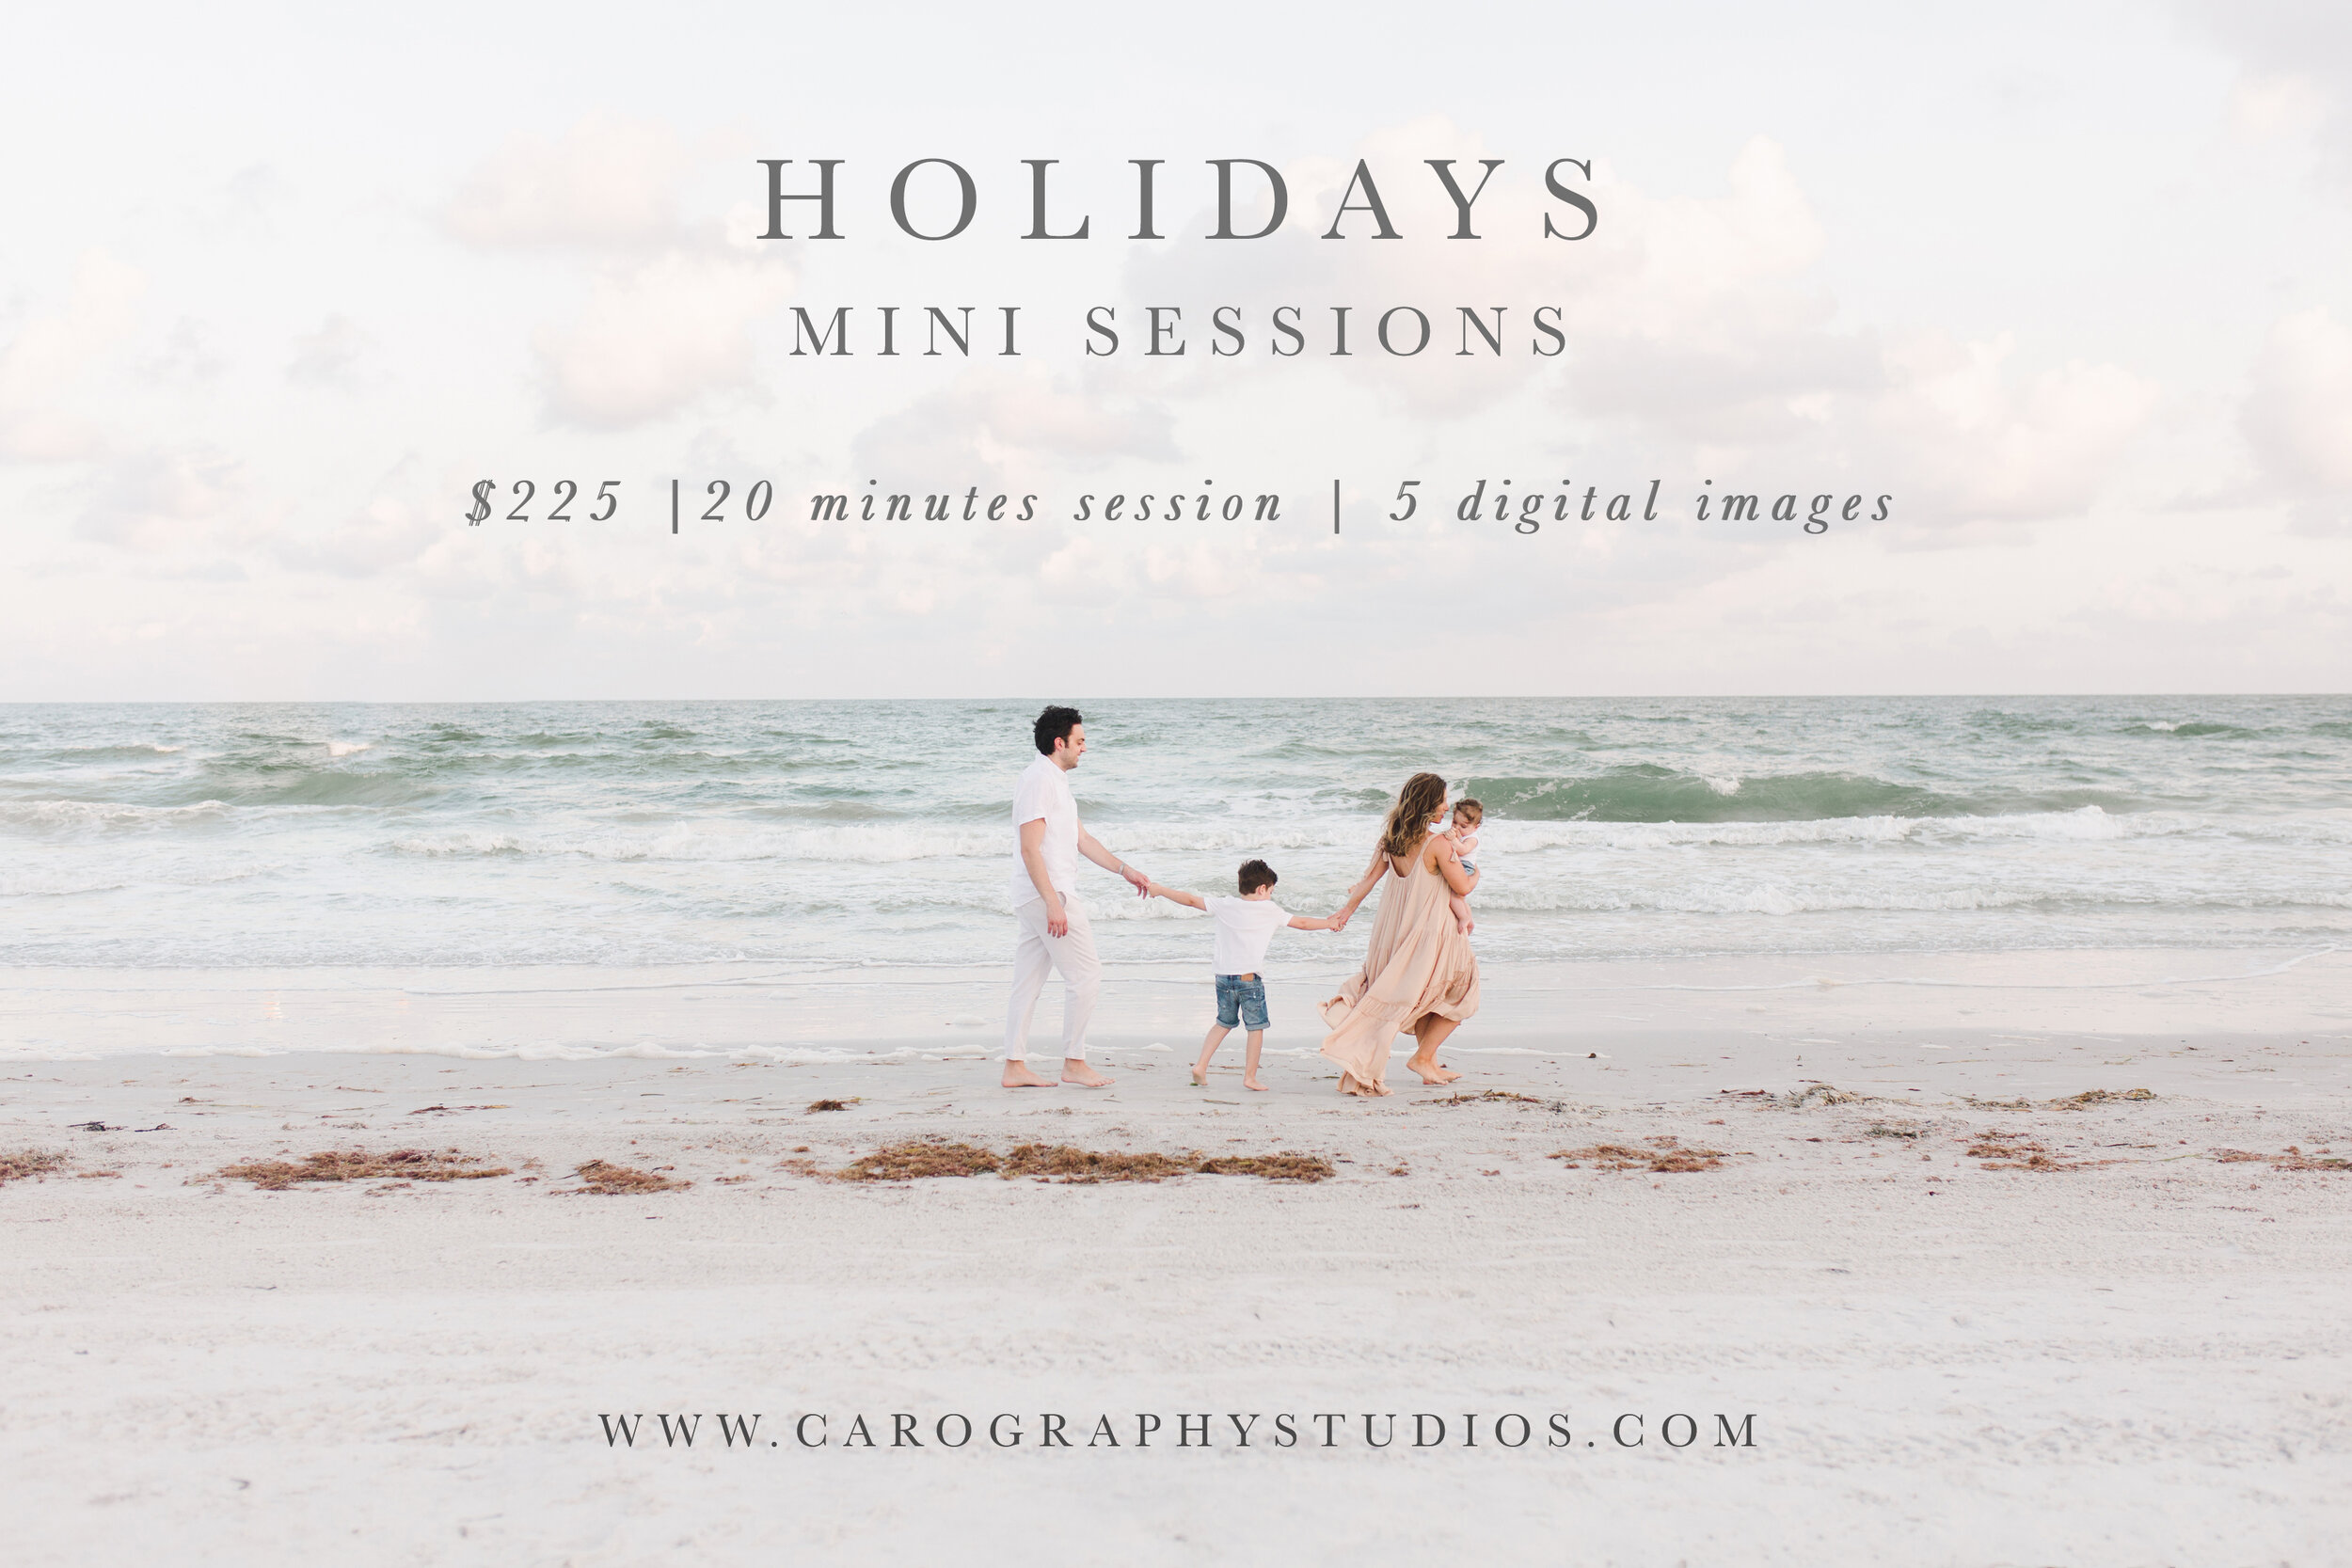 HOLIDAYS MINI SESSIONS.jpg